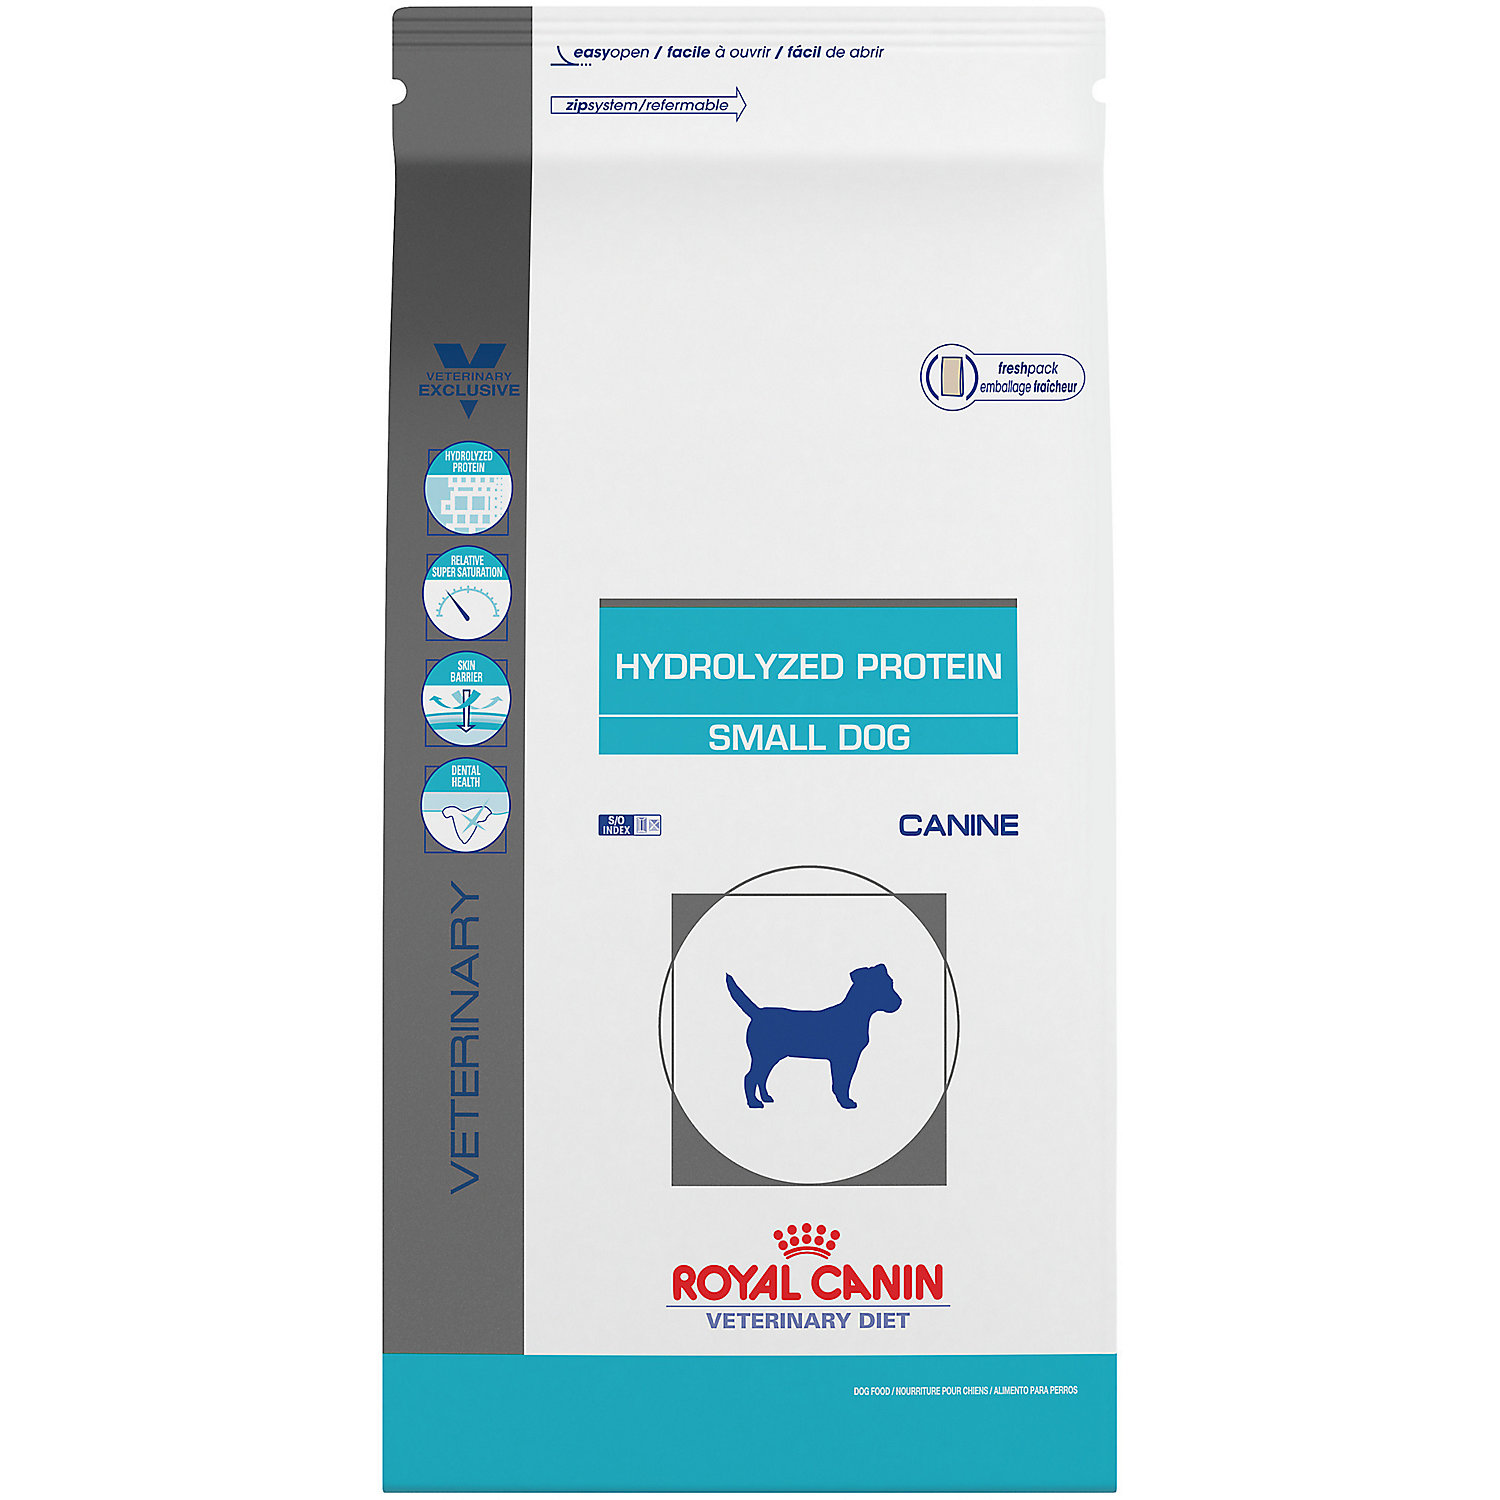 Royal Canin Veterinary Diet Canine Hydrolyzed Protein Small Dog Dry Dog Food